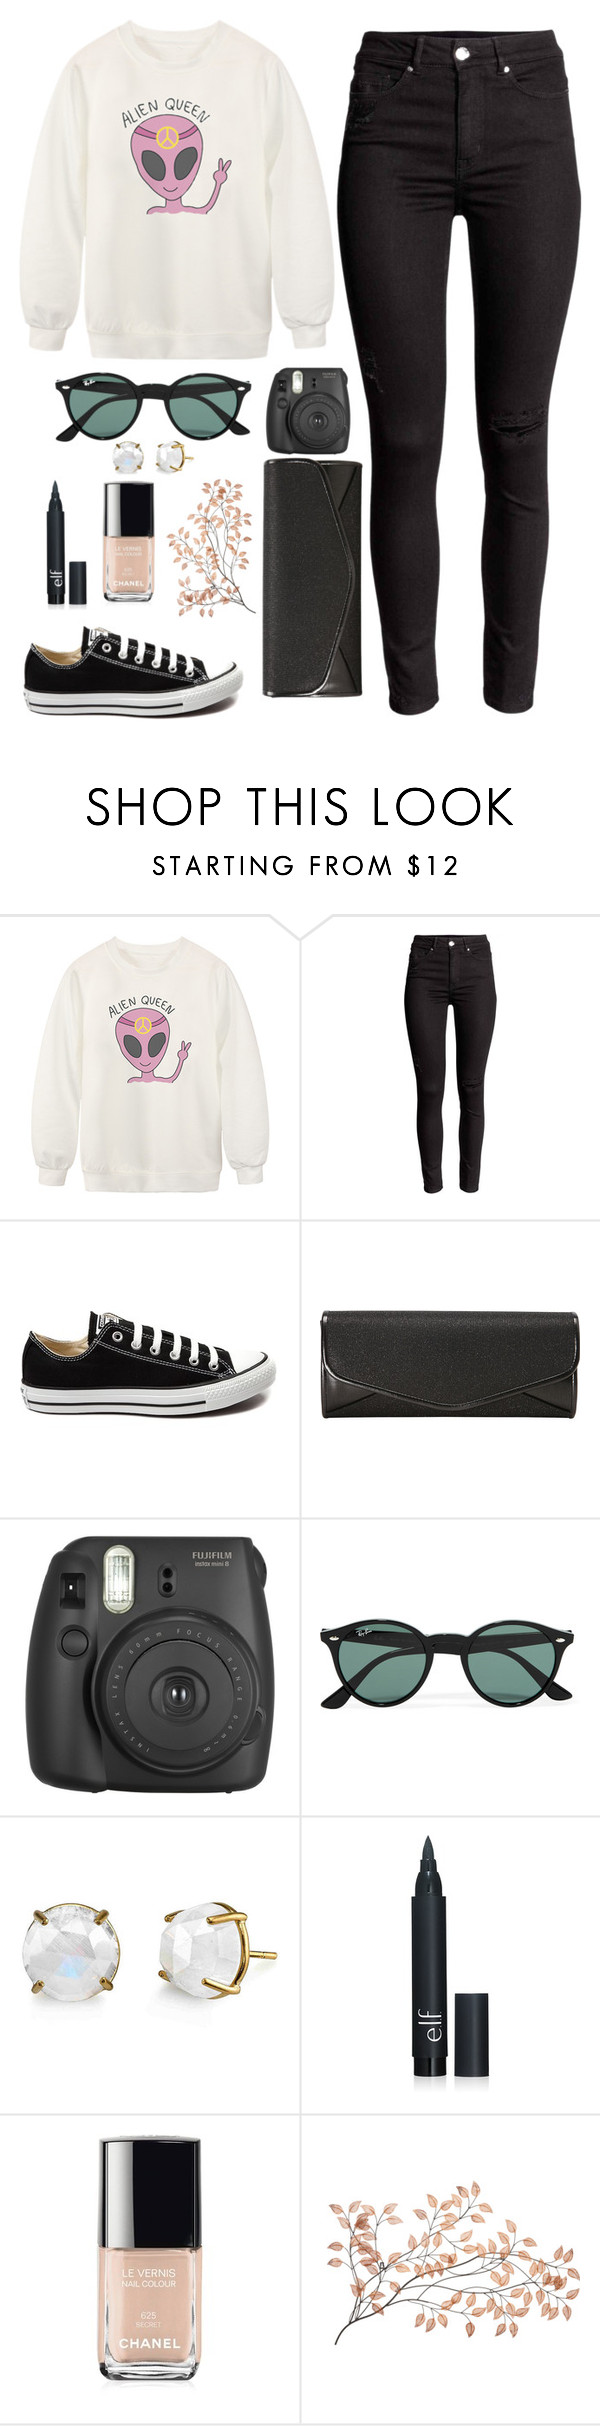 """Alien queen"" by aemun-ahmad ❤ liked on Polyvore featuring Chicnova Fashion, Converse, J. Furmani, Ray-Ban, Chanel, women's clothing, women, female, woman and misses"